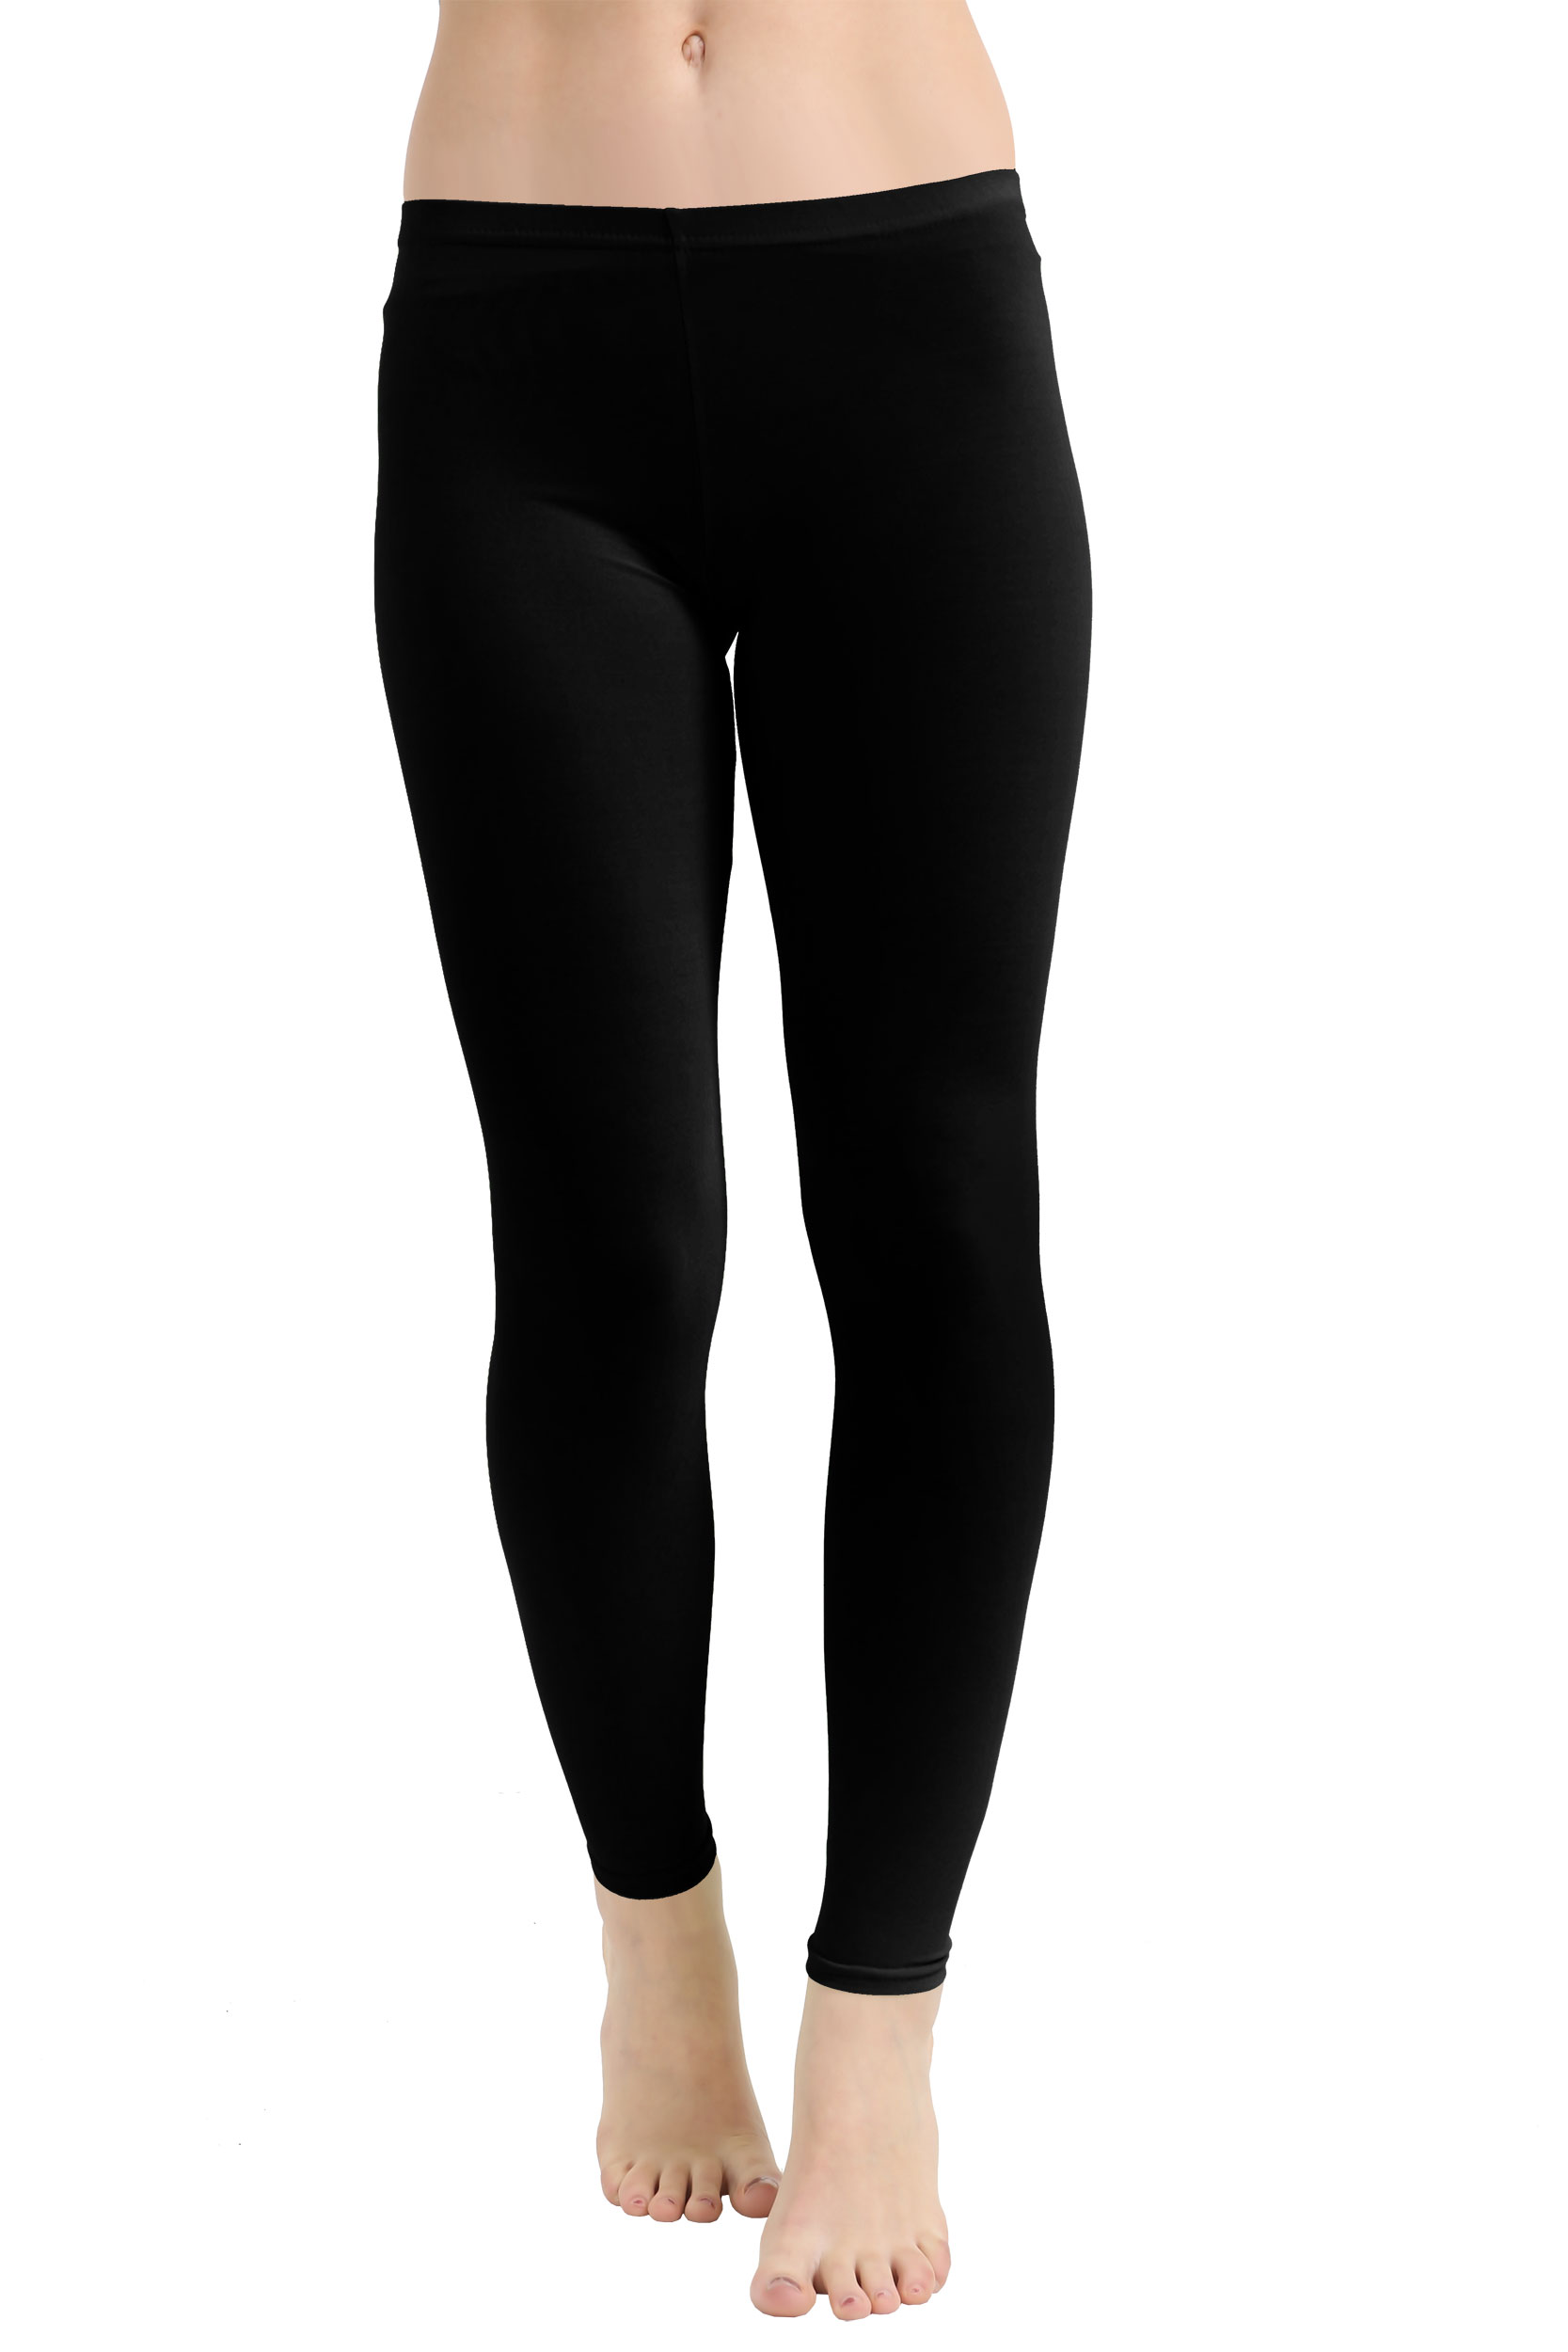 Crazy Chick Microfiber Black Leggings